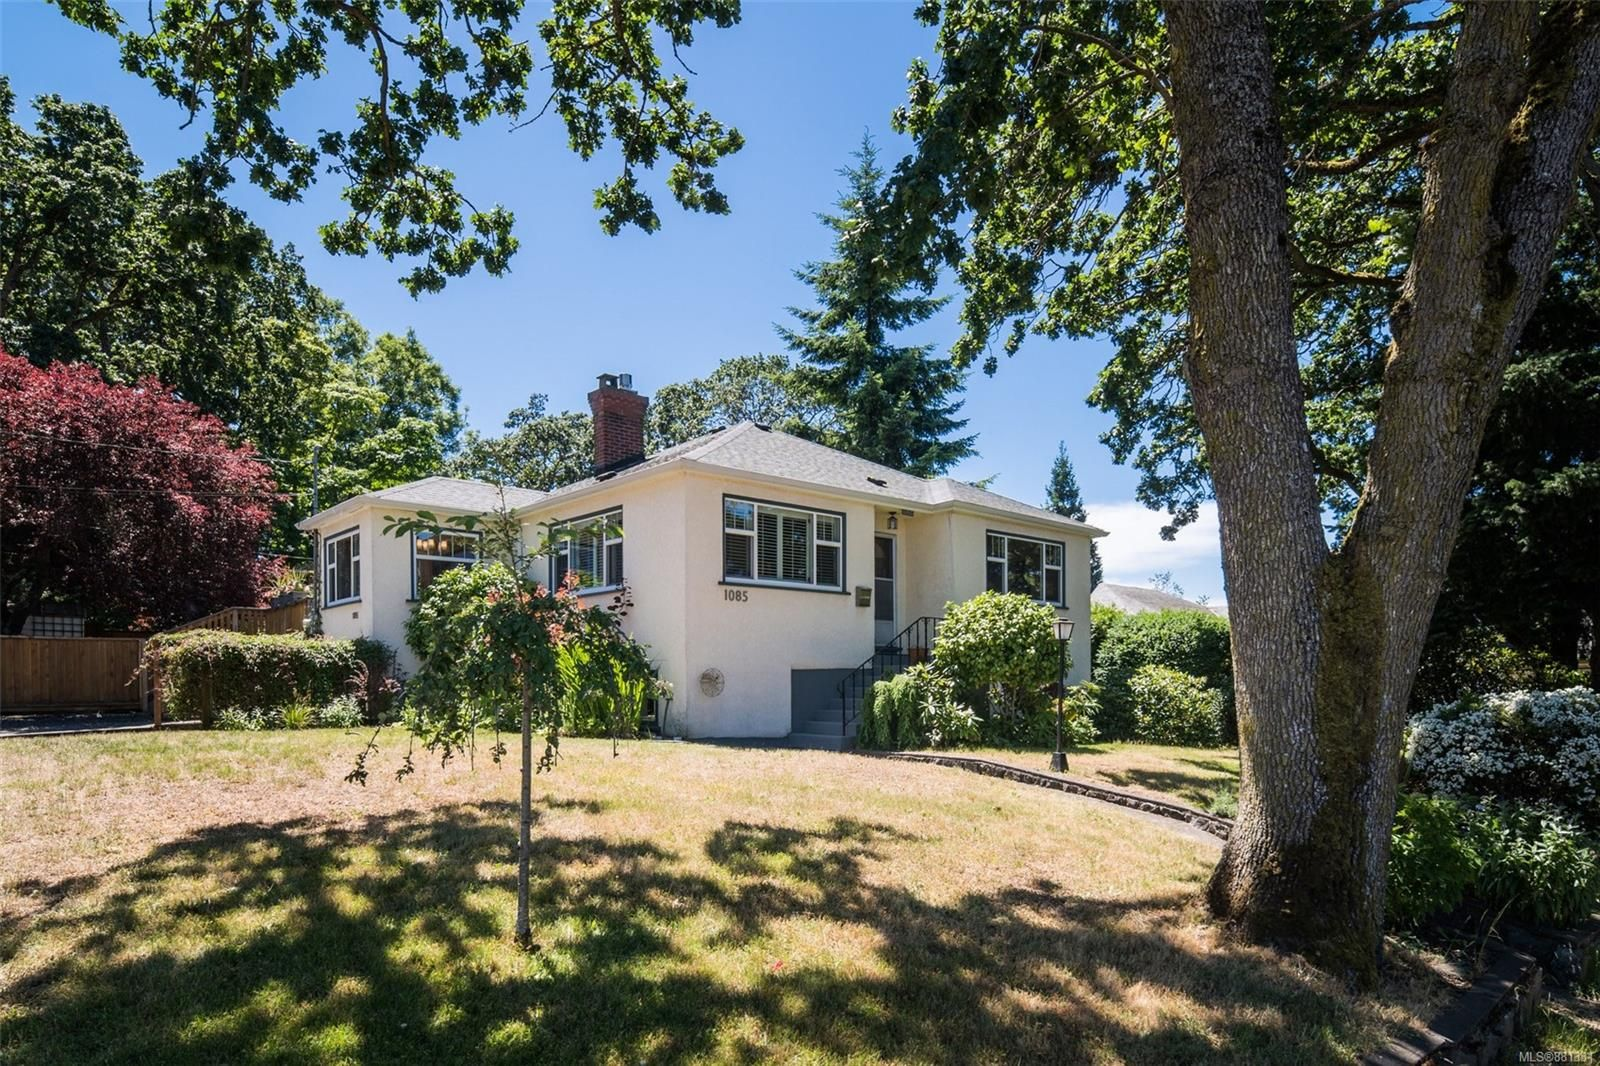 Main Photo: 1085 Finlayson St in : Vi Mayfair House for sale (Victoria)  : MLS®# 881331